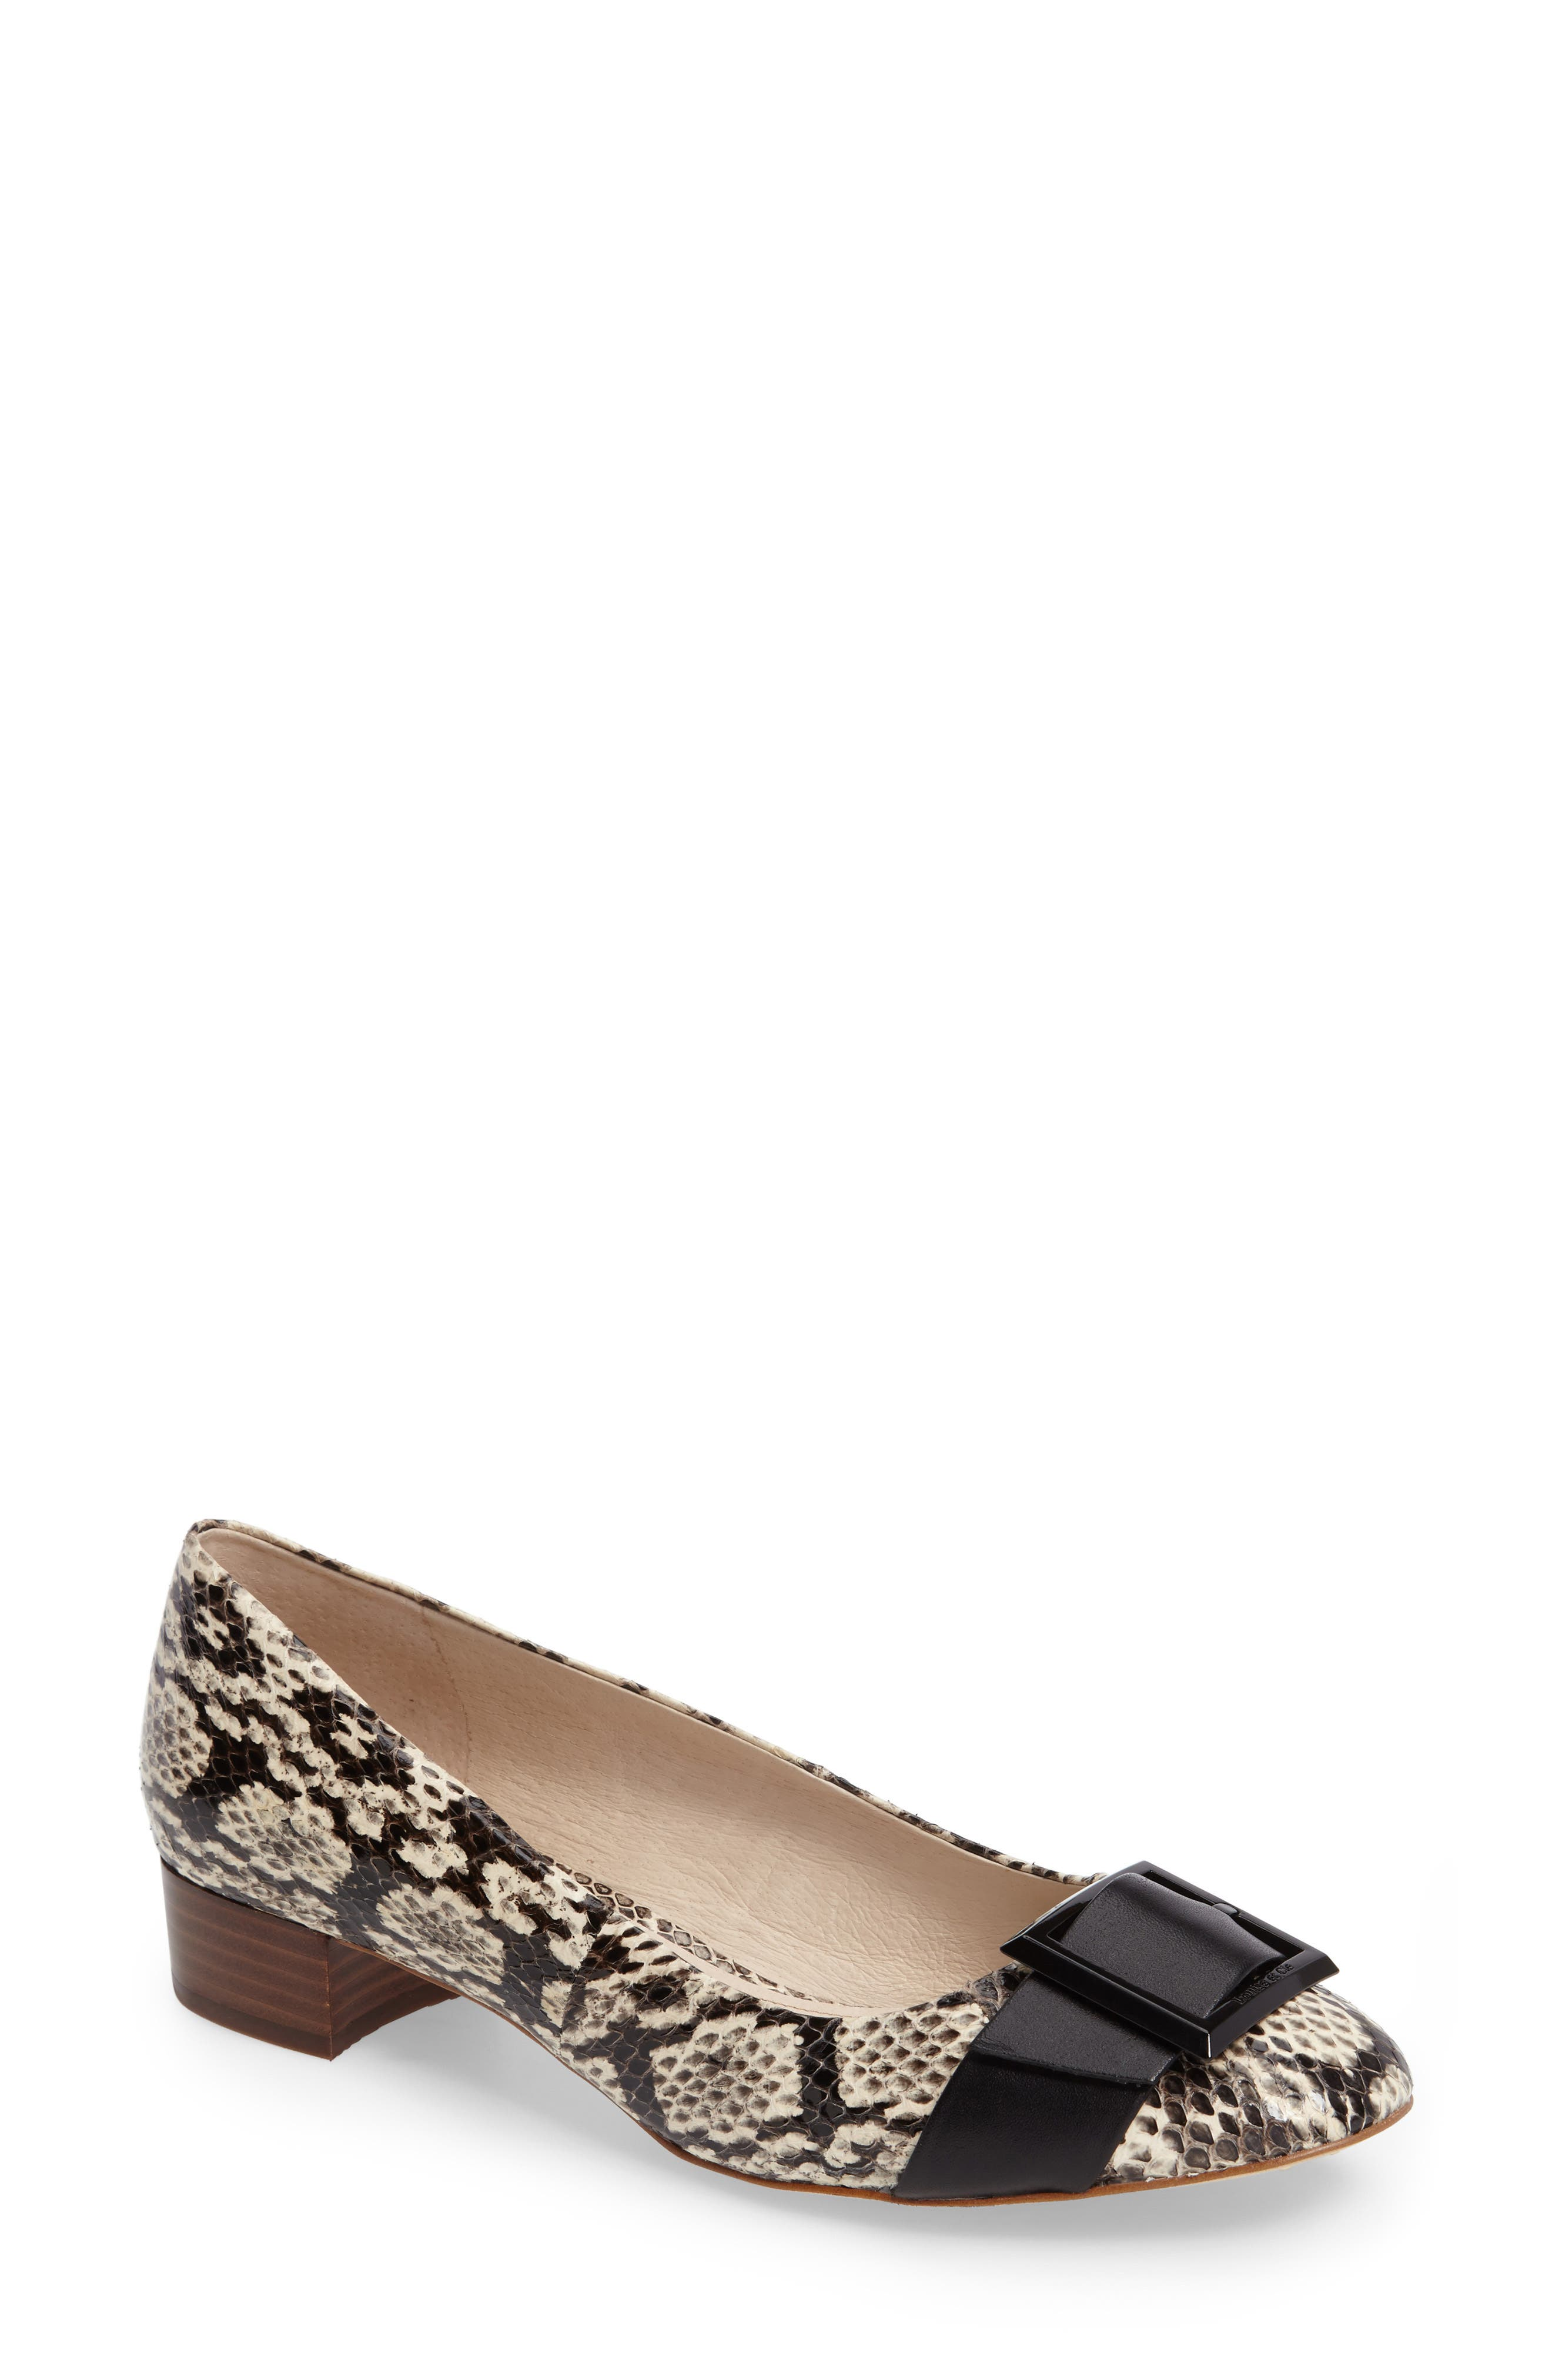 Louise et Cie 'Brianna' Buckle Toe Pump (Women) (Nordstrom Exclusive)